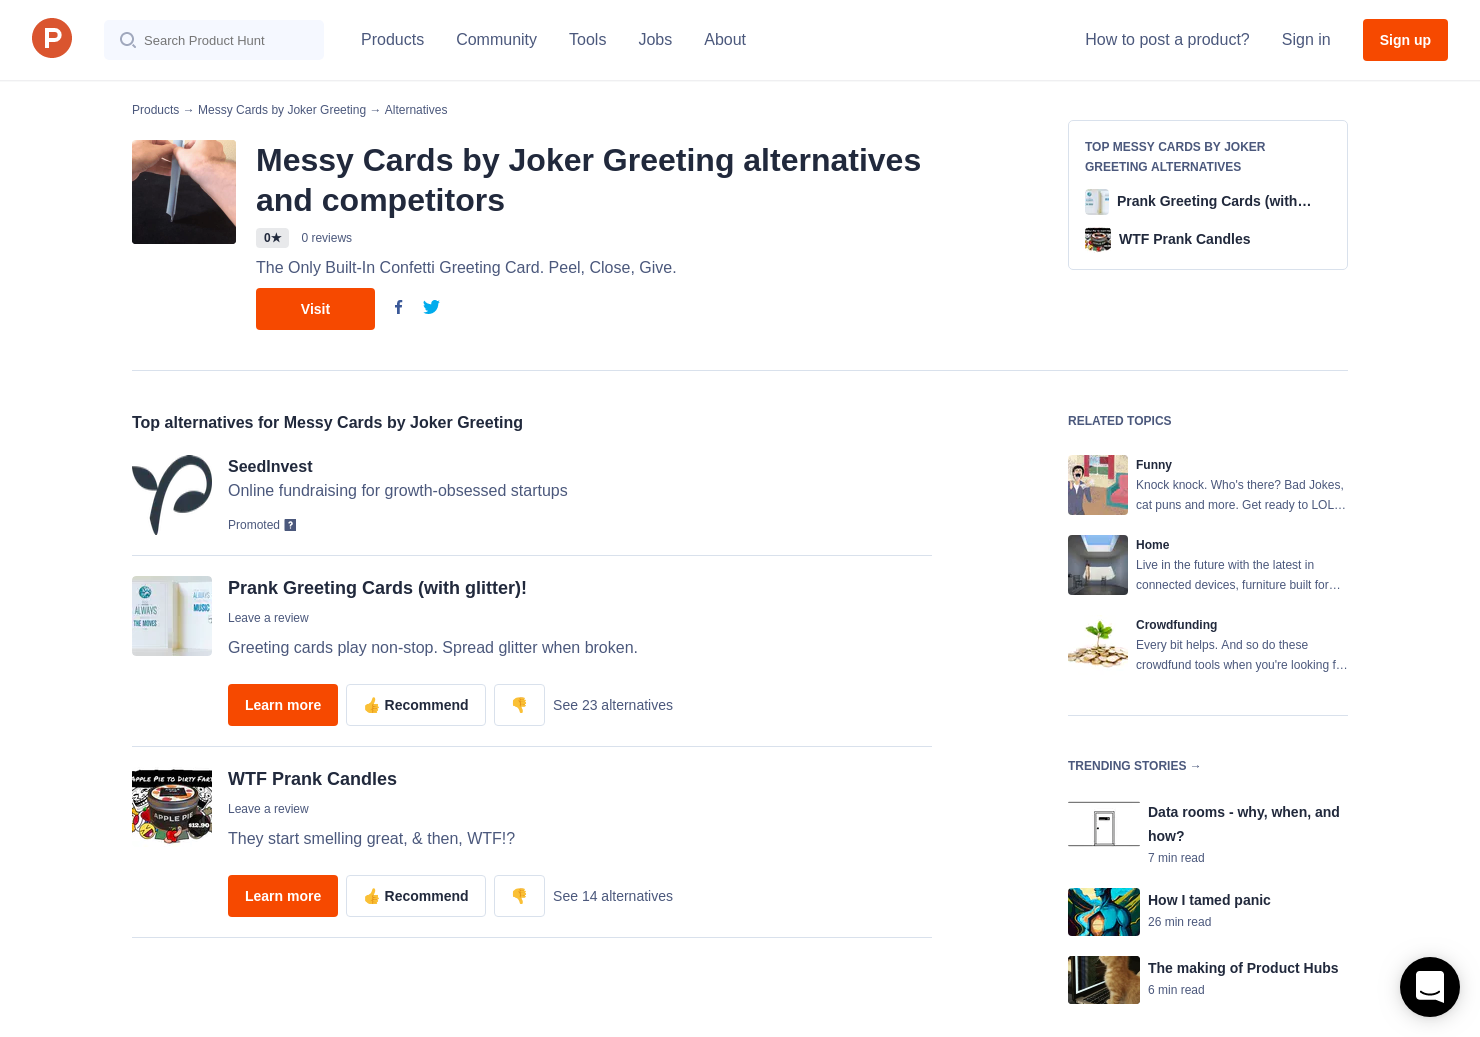 2 Alternatives To Messy Cards By Joker Greeting Product Hunt